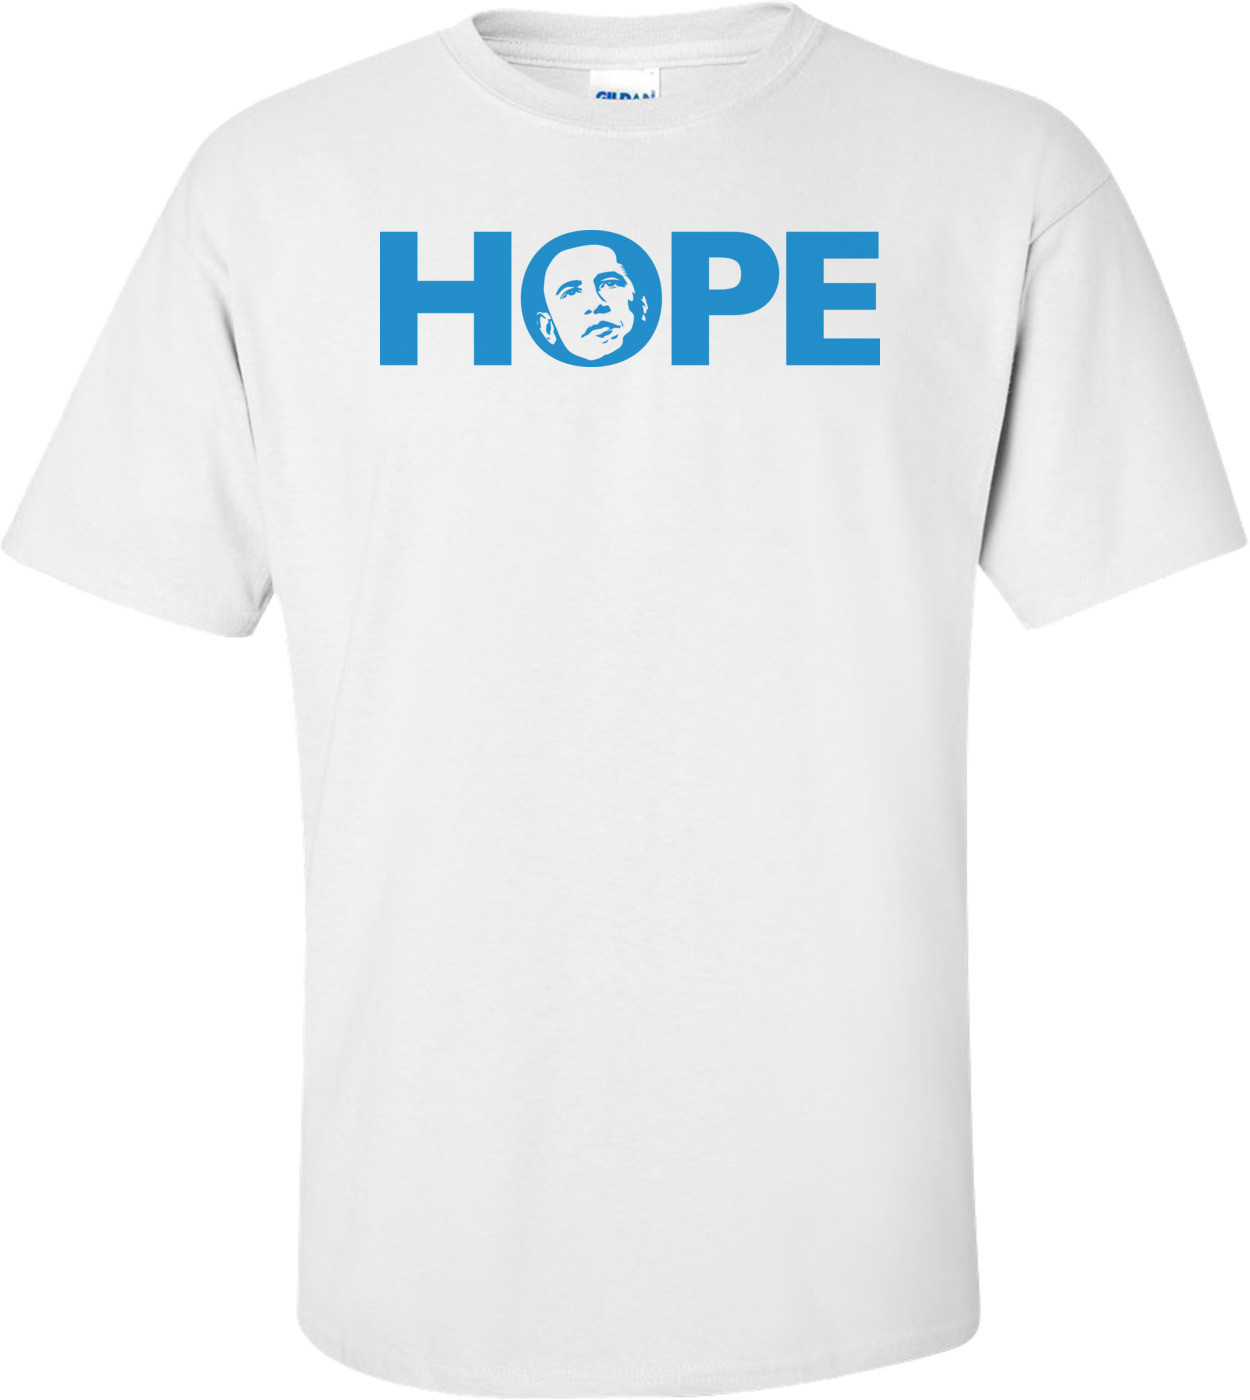 Hope Pro Obama T-shirt